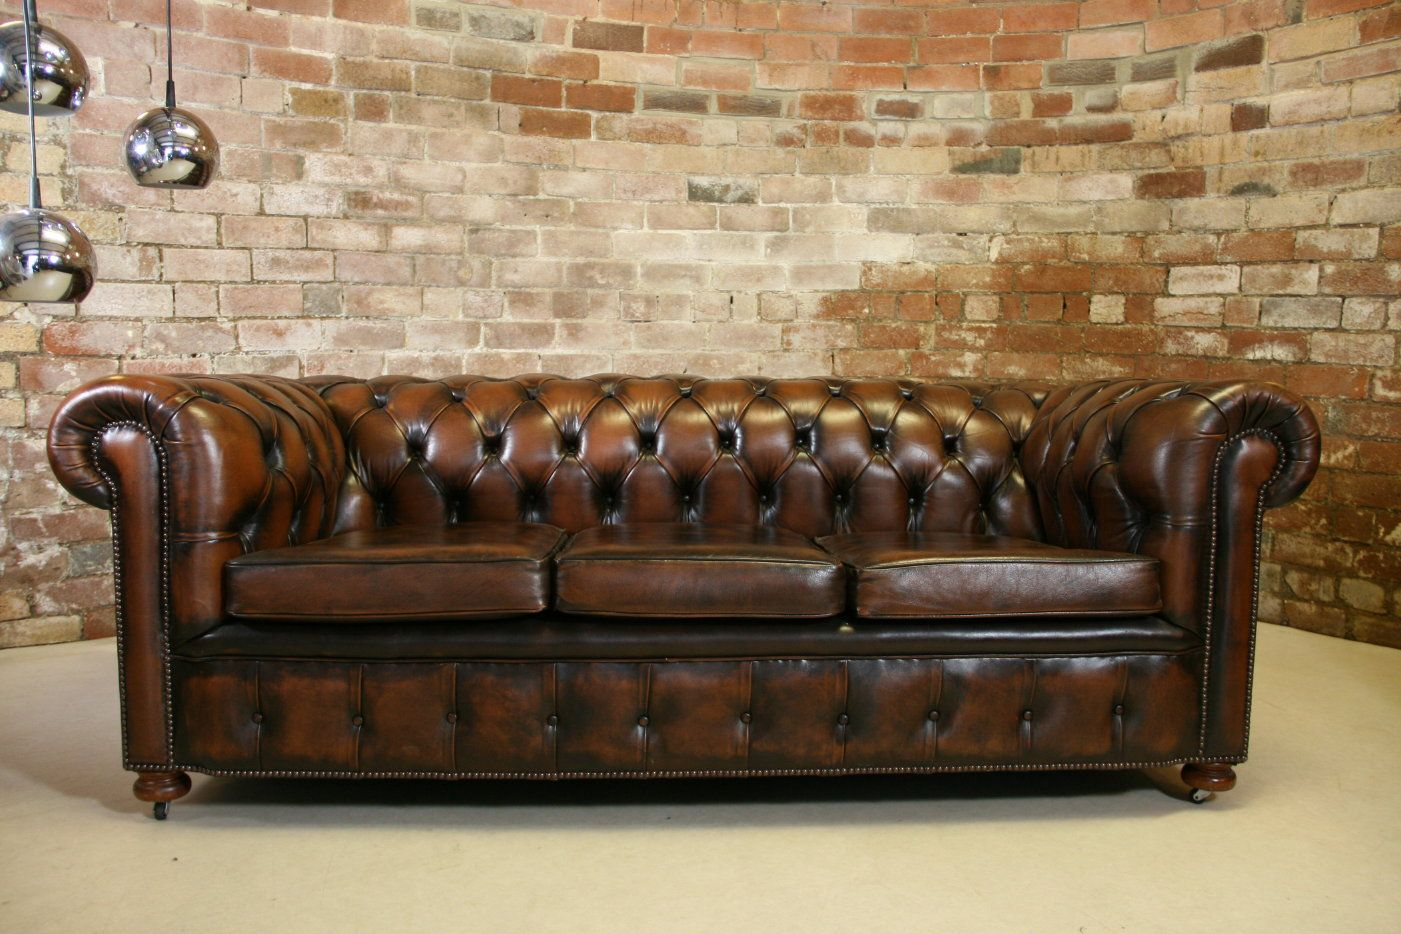 vintage chesterfield antique brown leather 3 seater sofa retro rh pinterest com